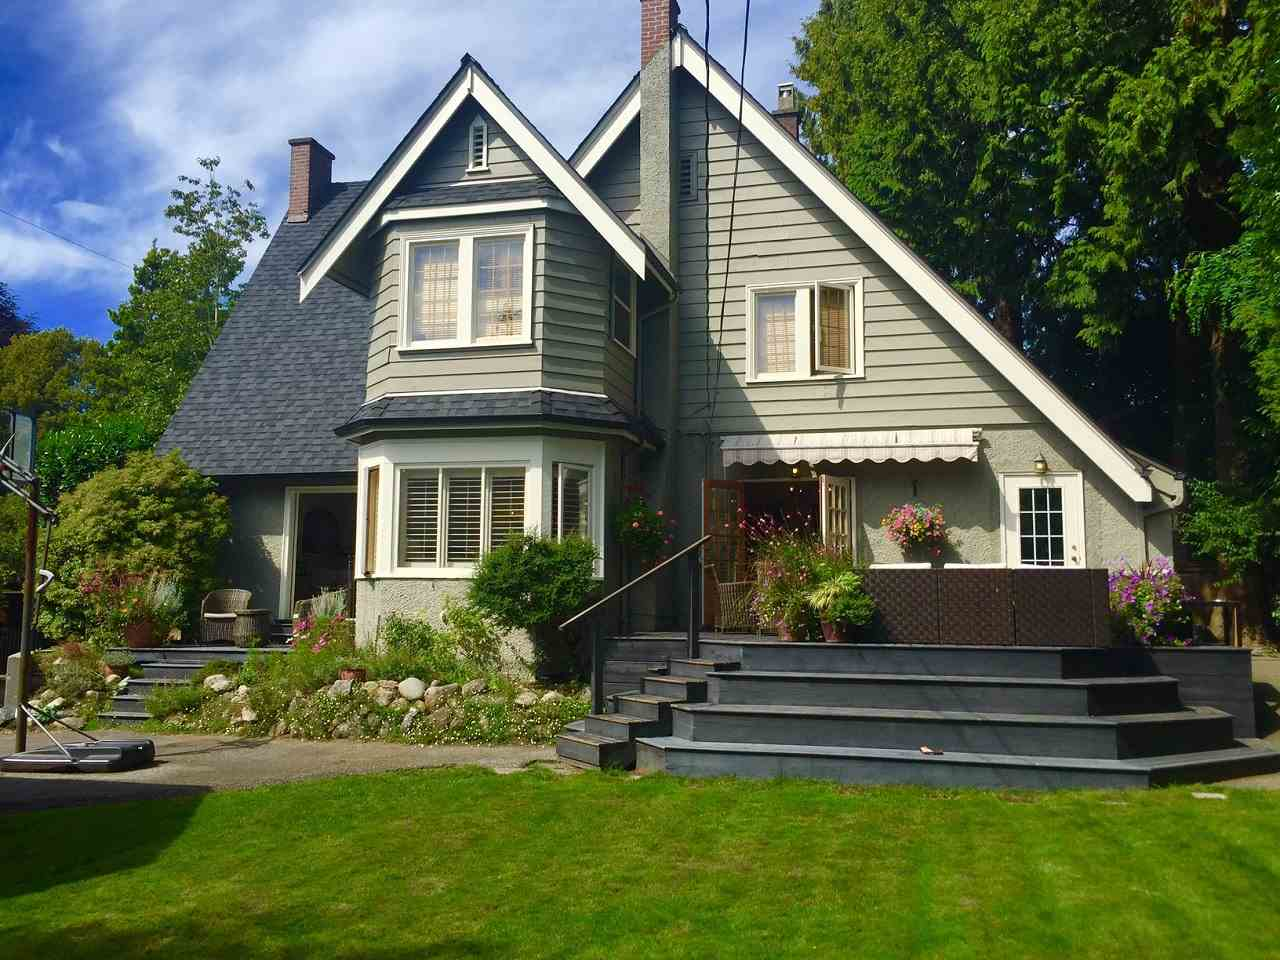 Photo 3: 1538 W 40TH AVENUE in Vancouver: Shaughnessy House for sale (Vancouver West)  : MLS® # R2115759